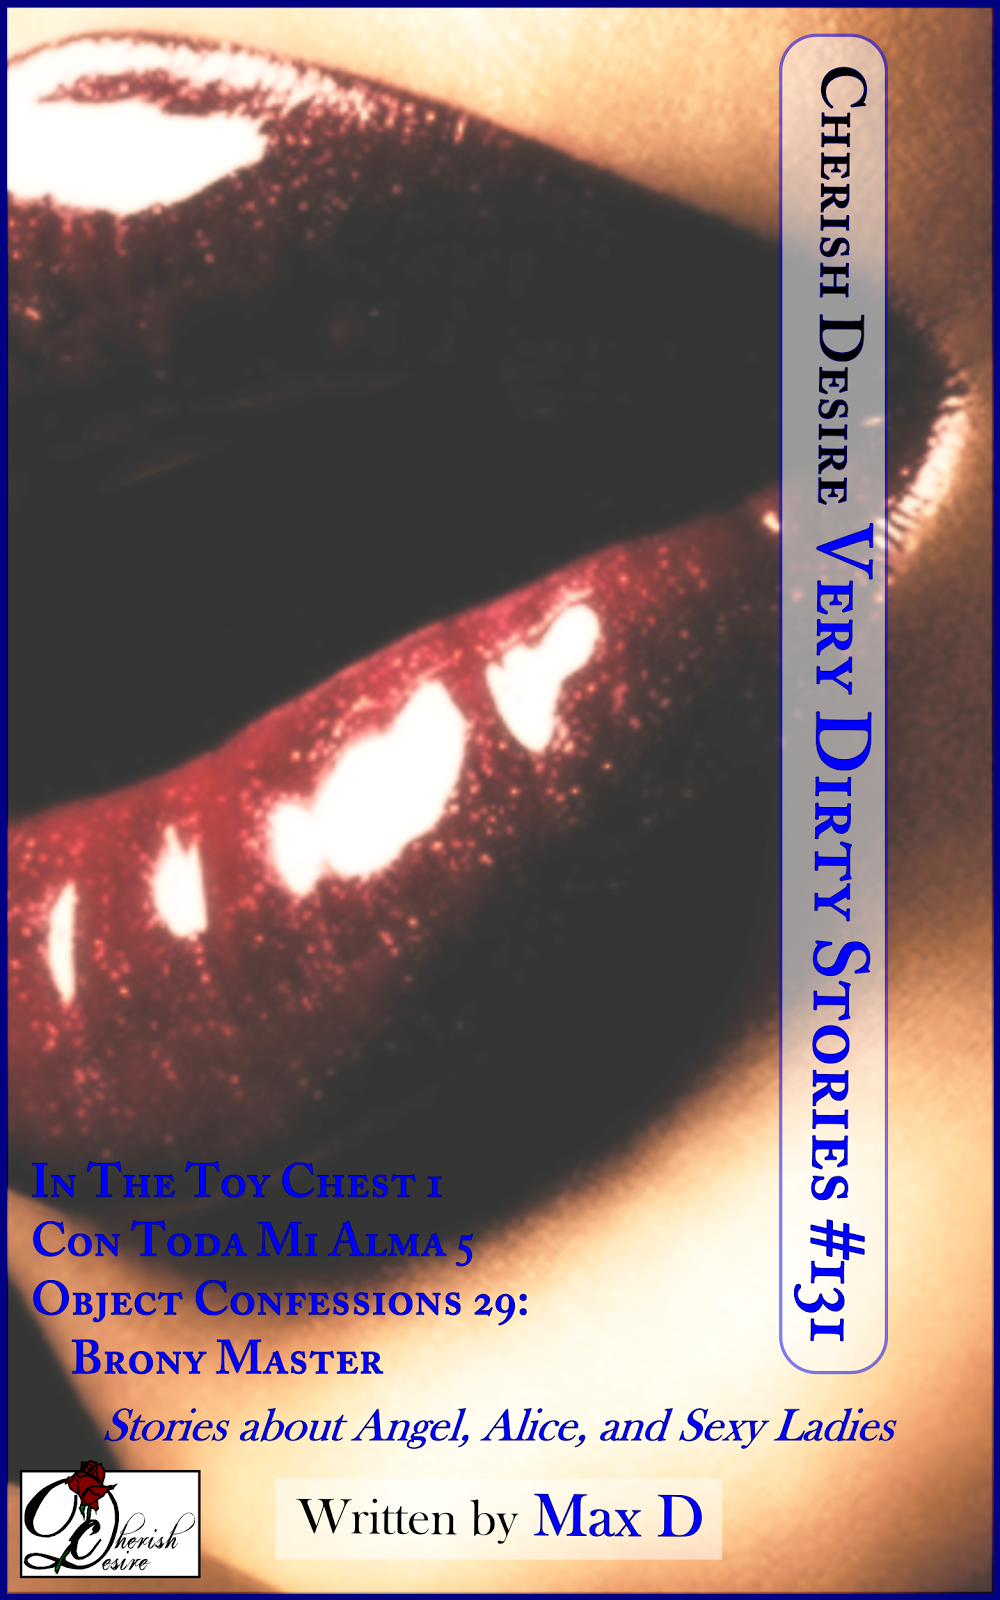 Cherish Desire: Very Dirty Stories #131, Max D, erotica